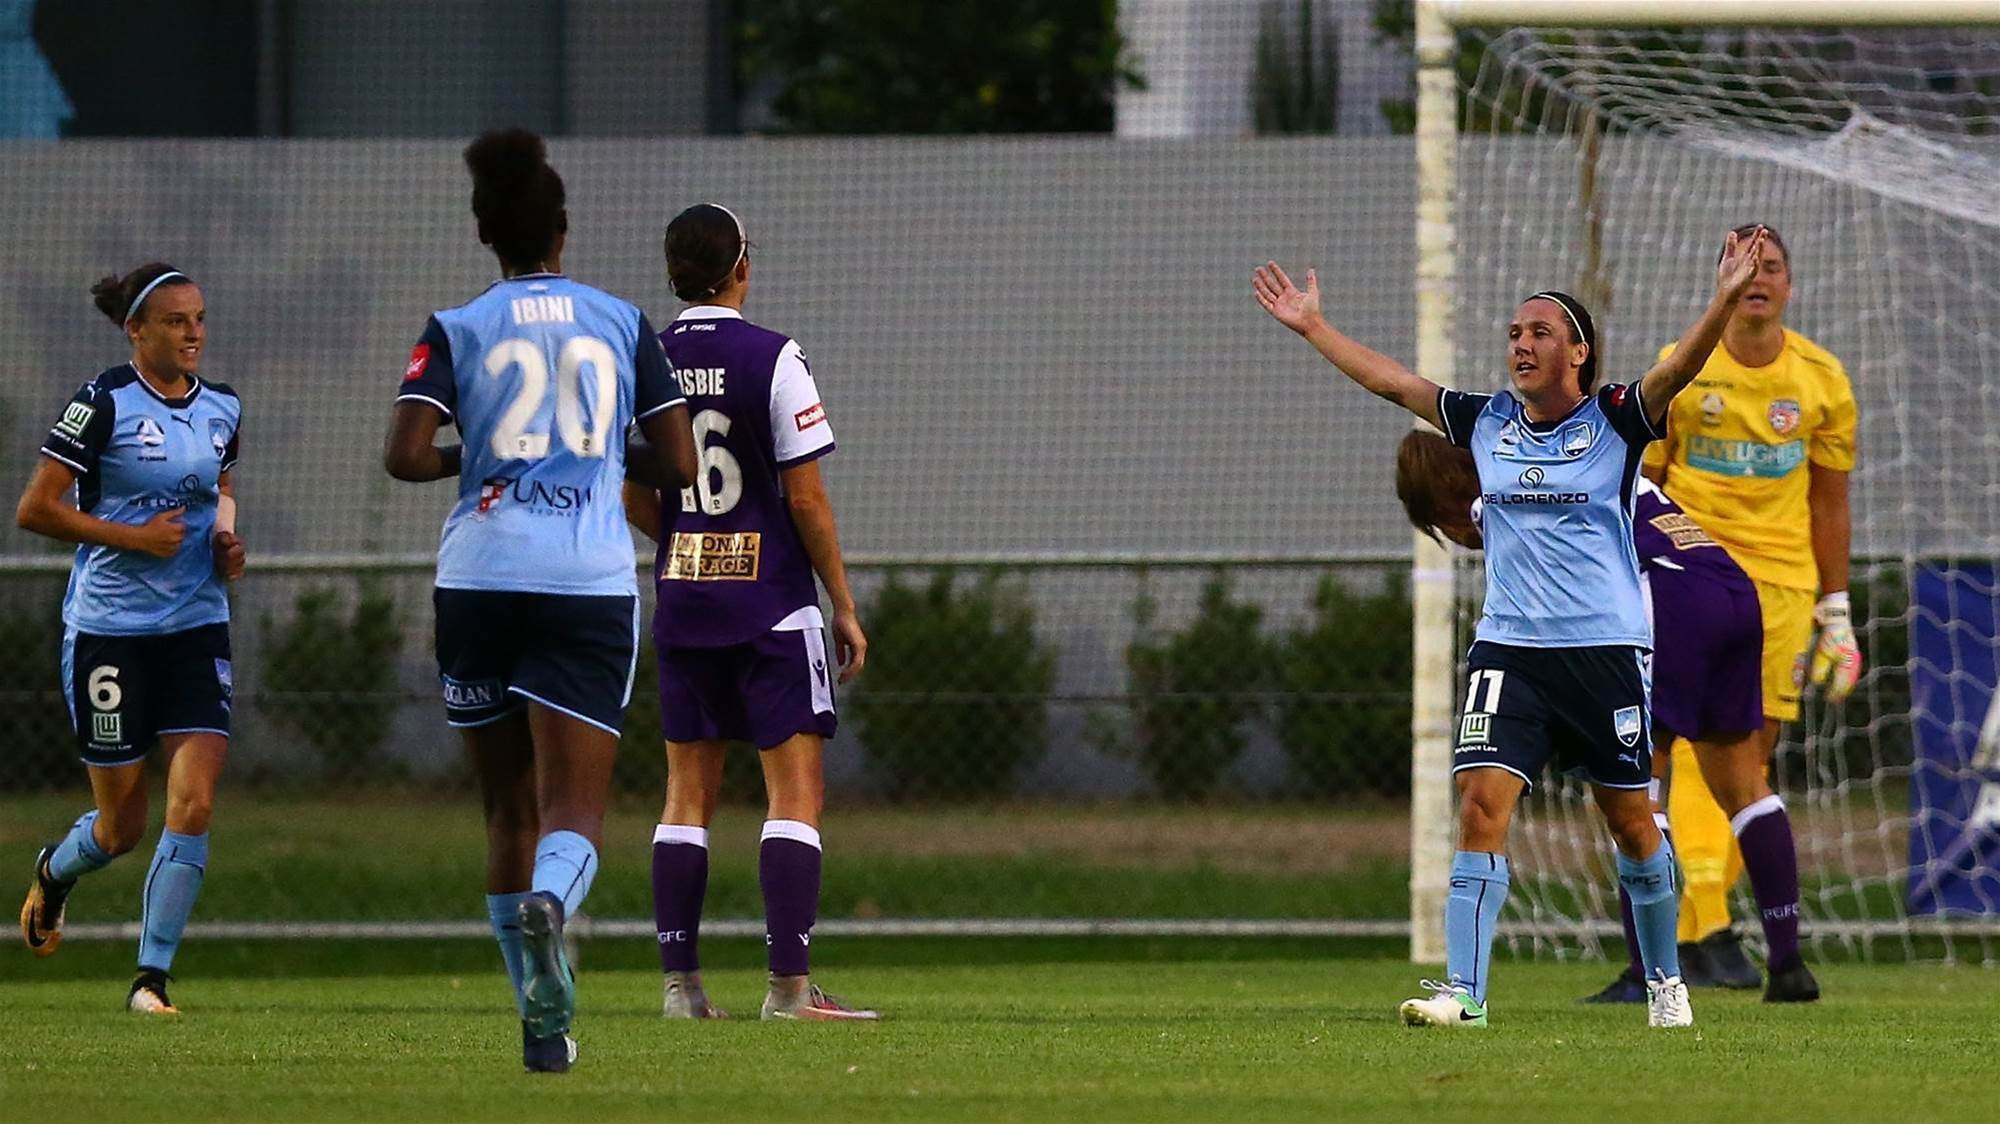 Sydney FC too strong for Sam Kerr's Perth